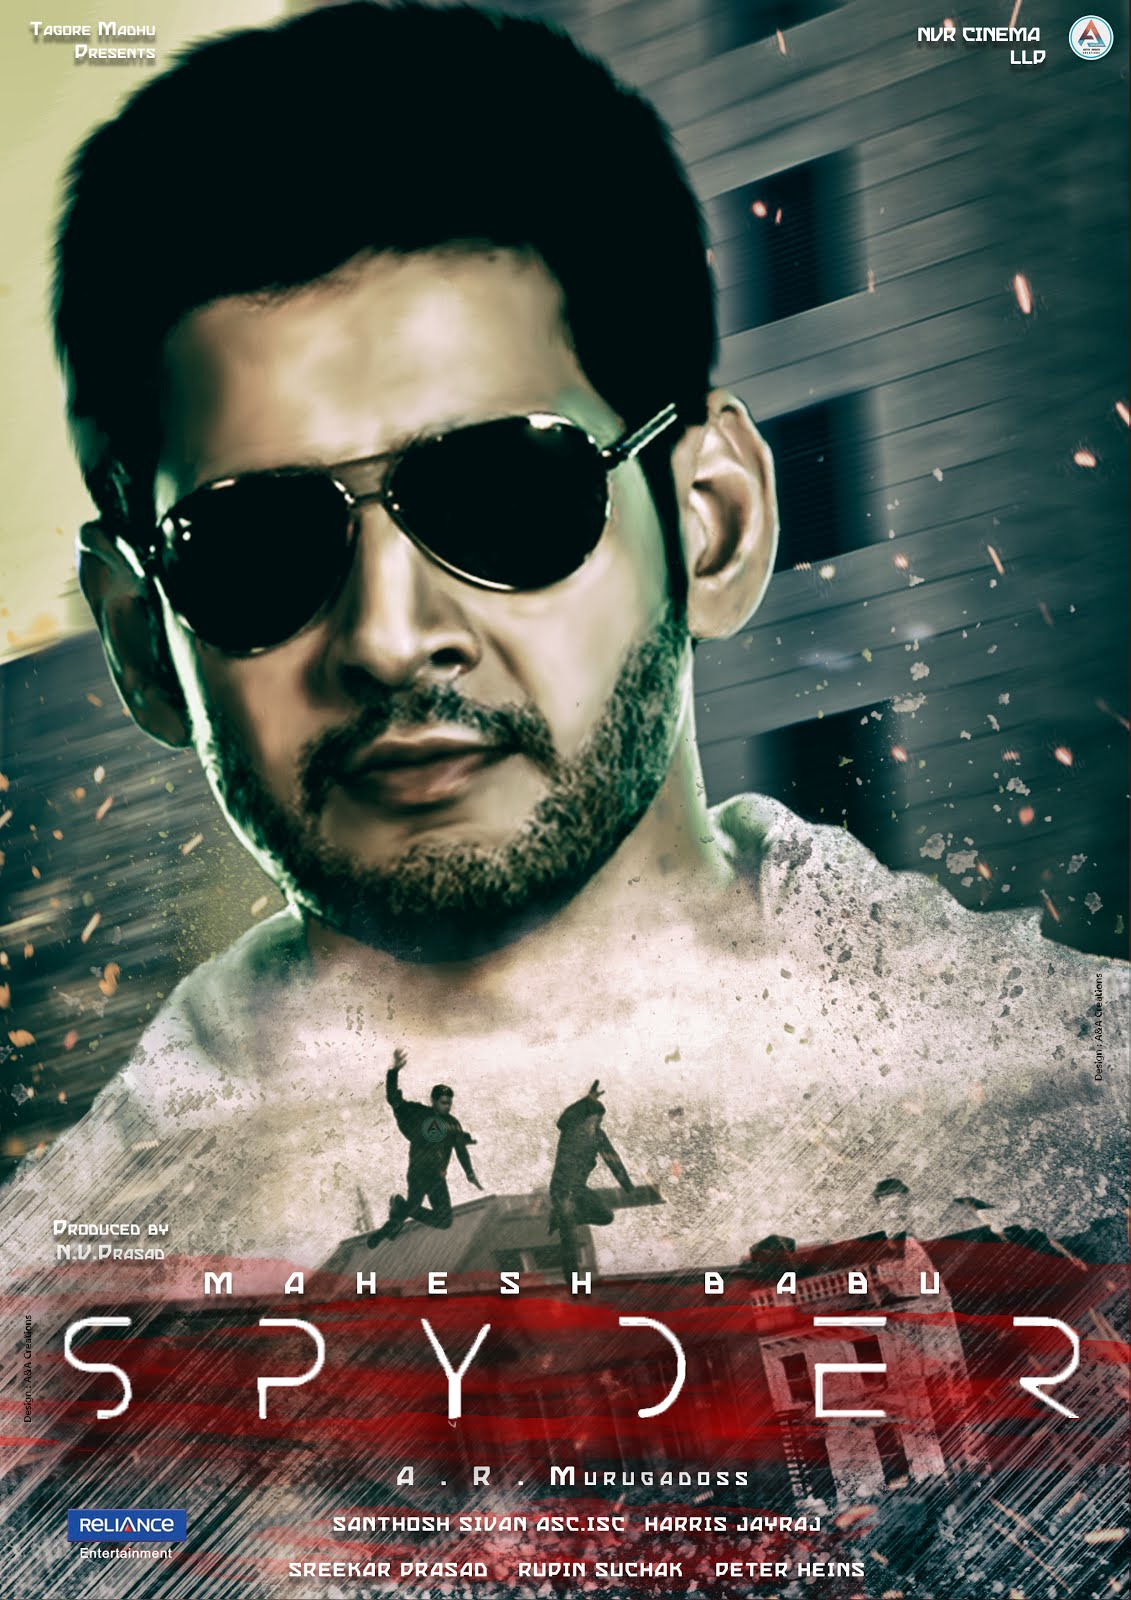 Spyder (2017) Hindi Dual Audio 600MB HDRip 720p HEVC x265 UNCUT